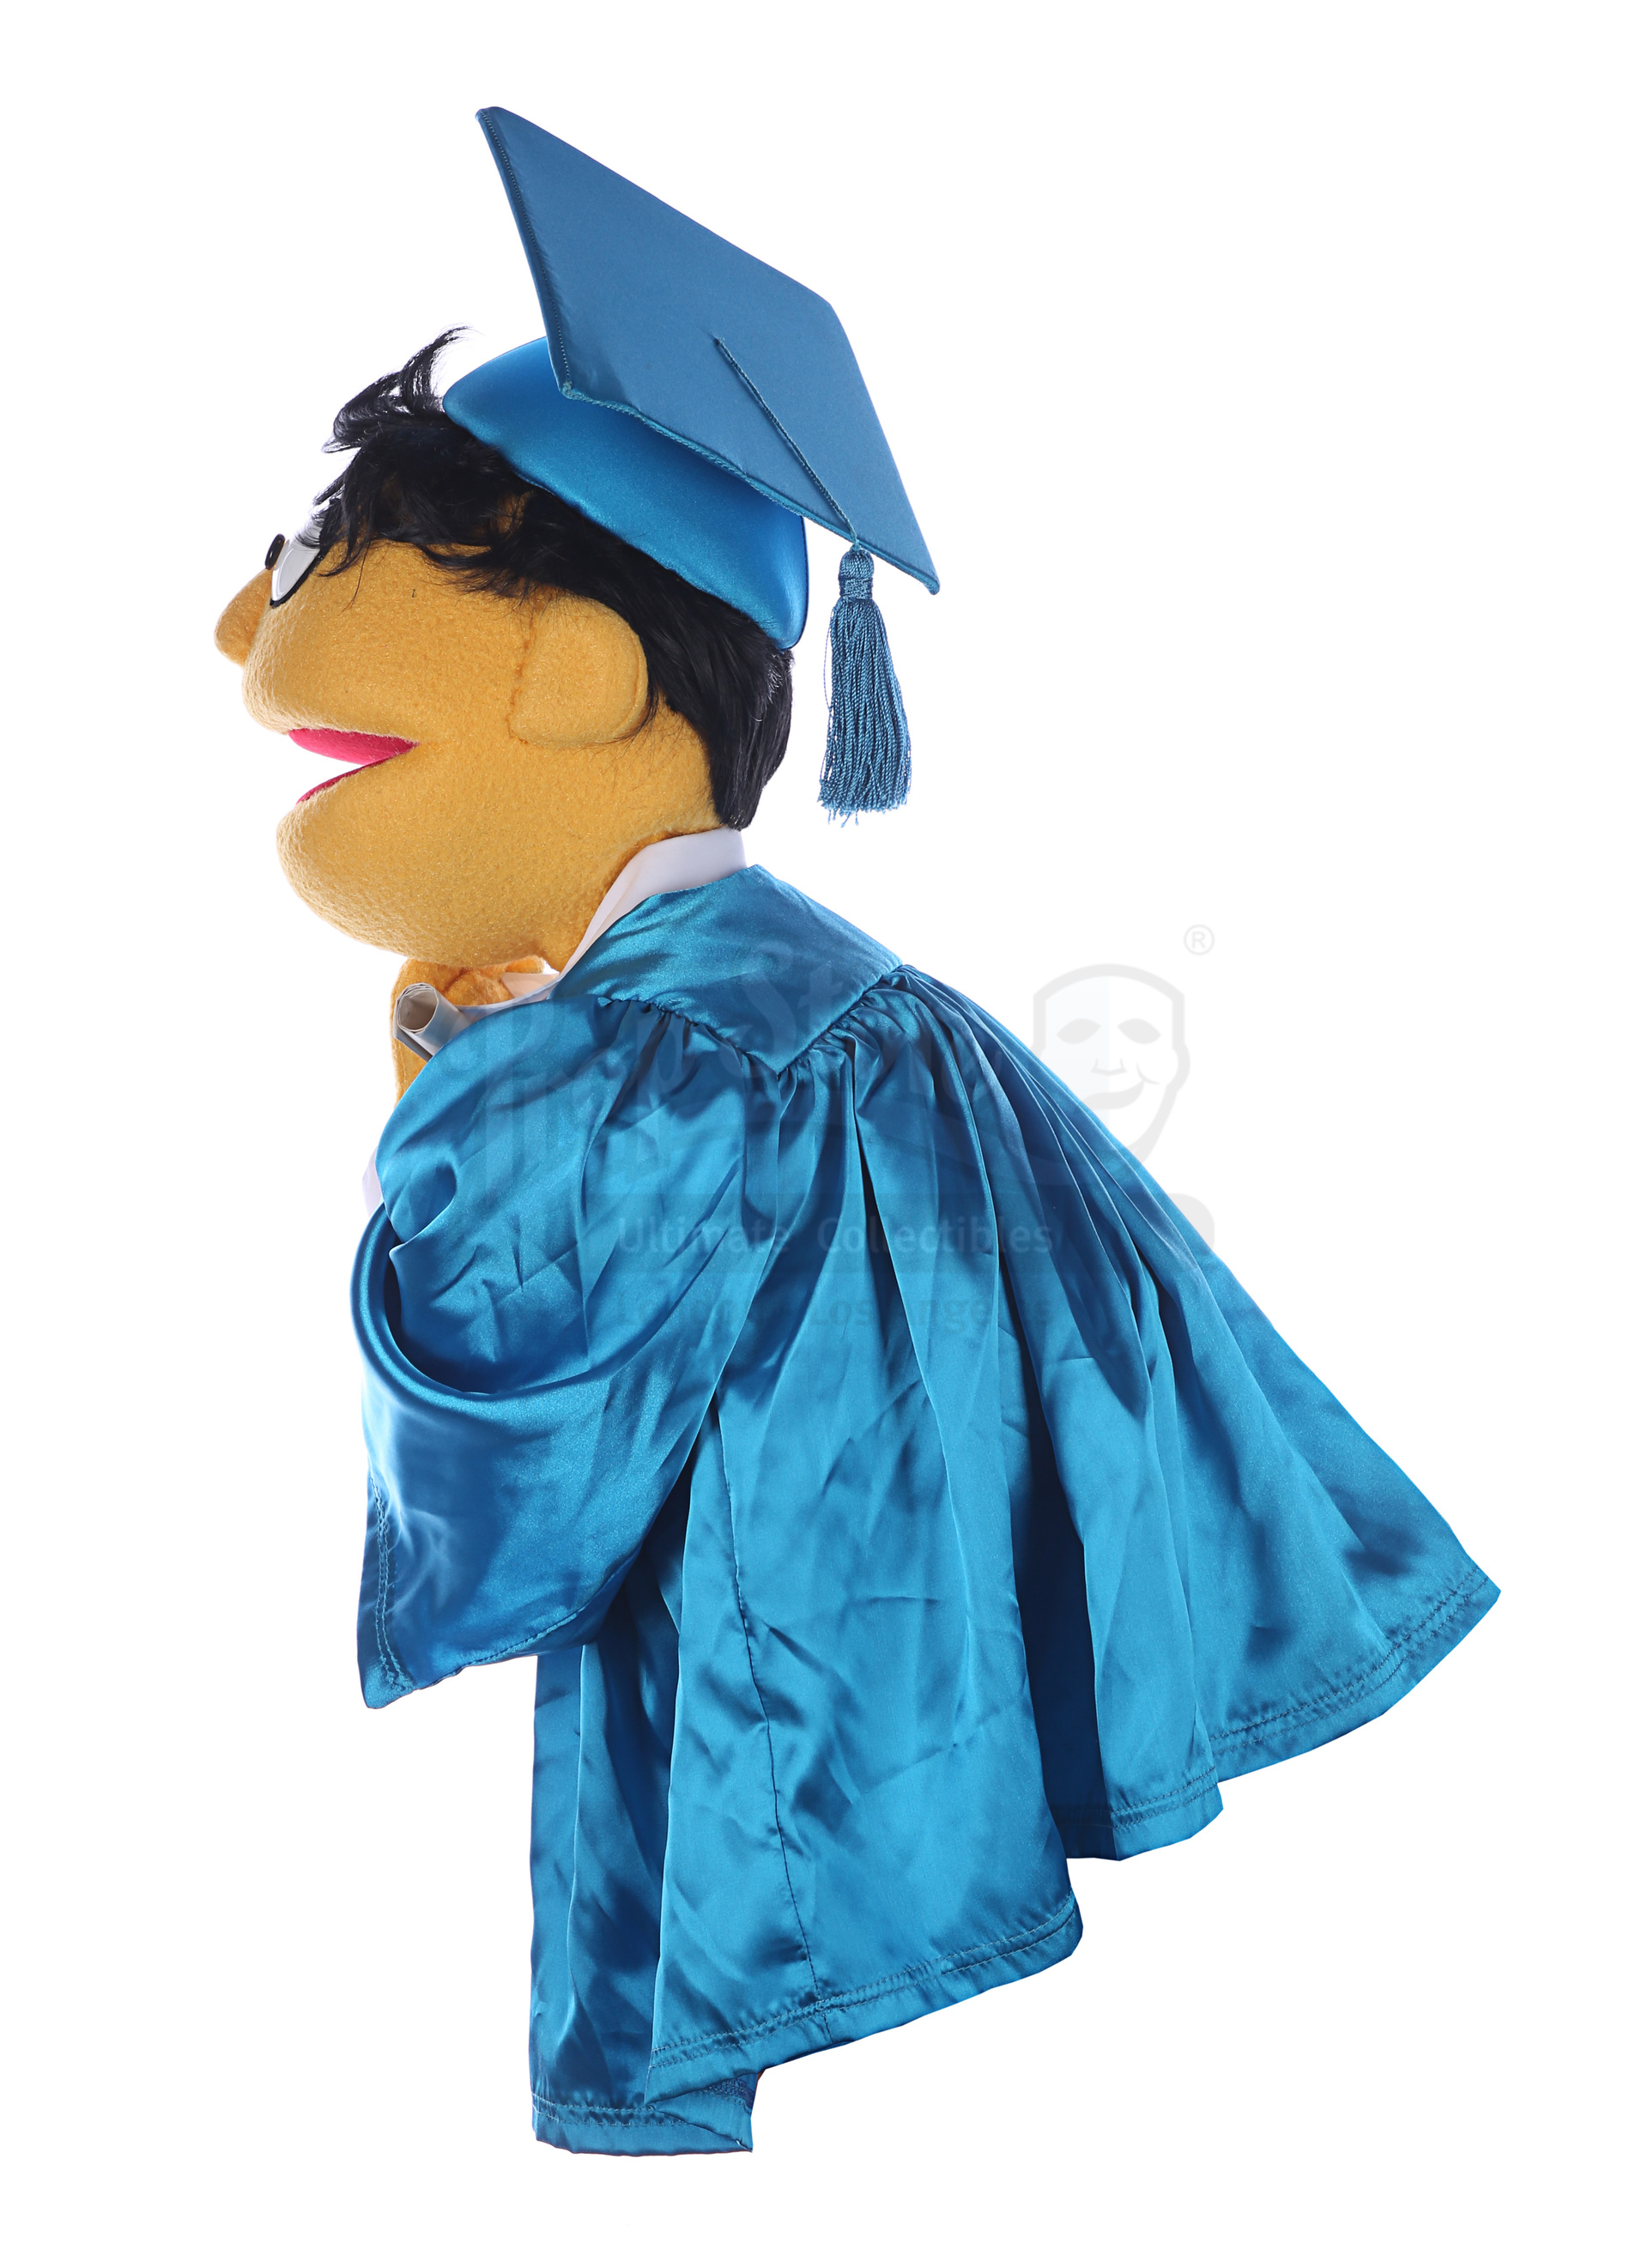 AVENUE Q (STAGE SHOW) - Kate Monster and Princeton Graduation Puppets - Image 4 of 9